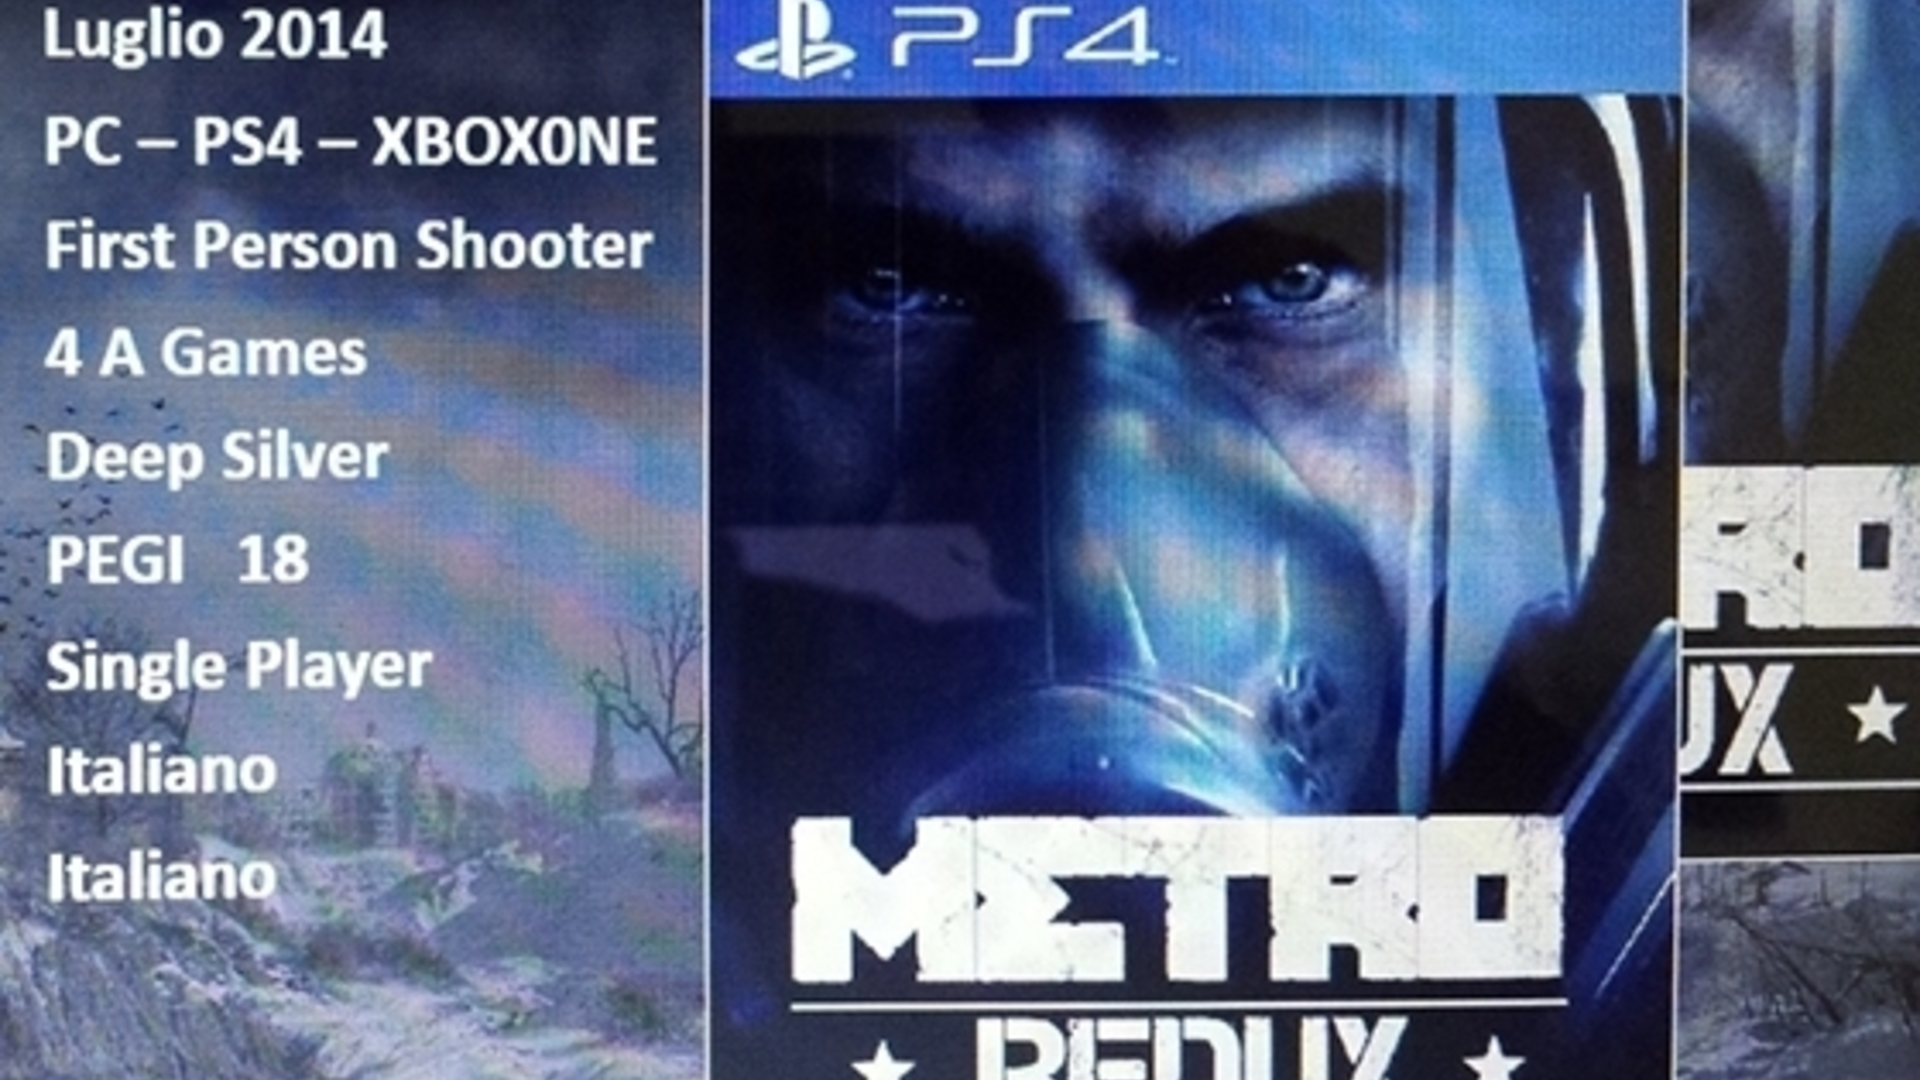 Looks like the Metro games are ing to PS4 and Xbox e